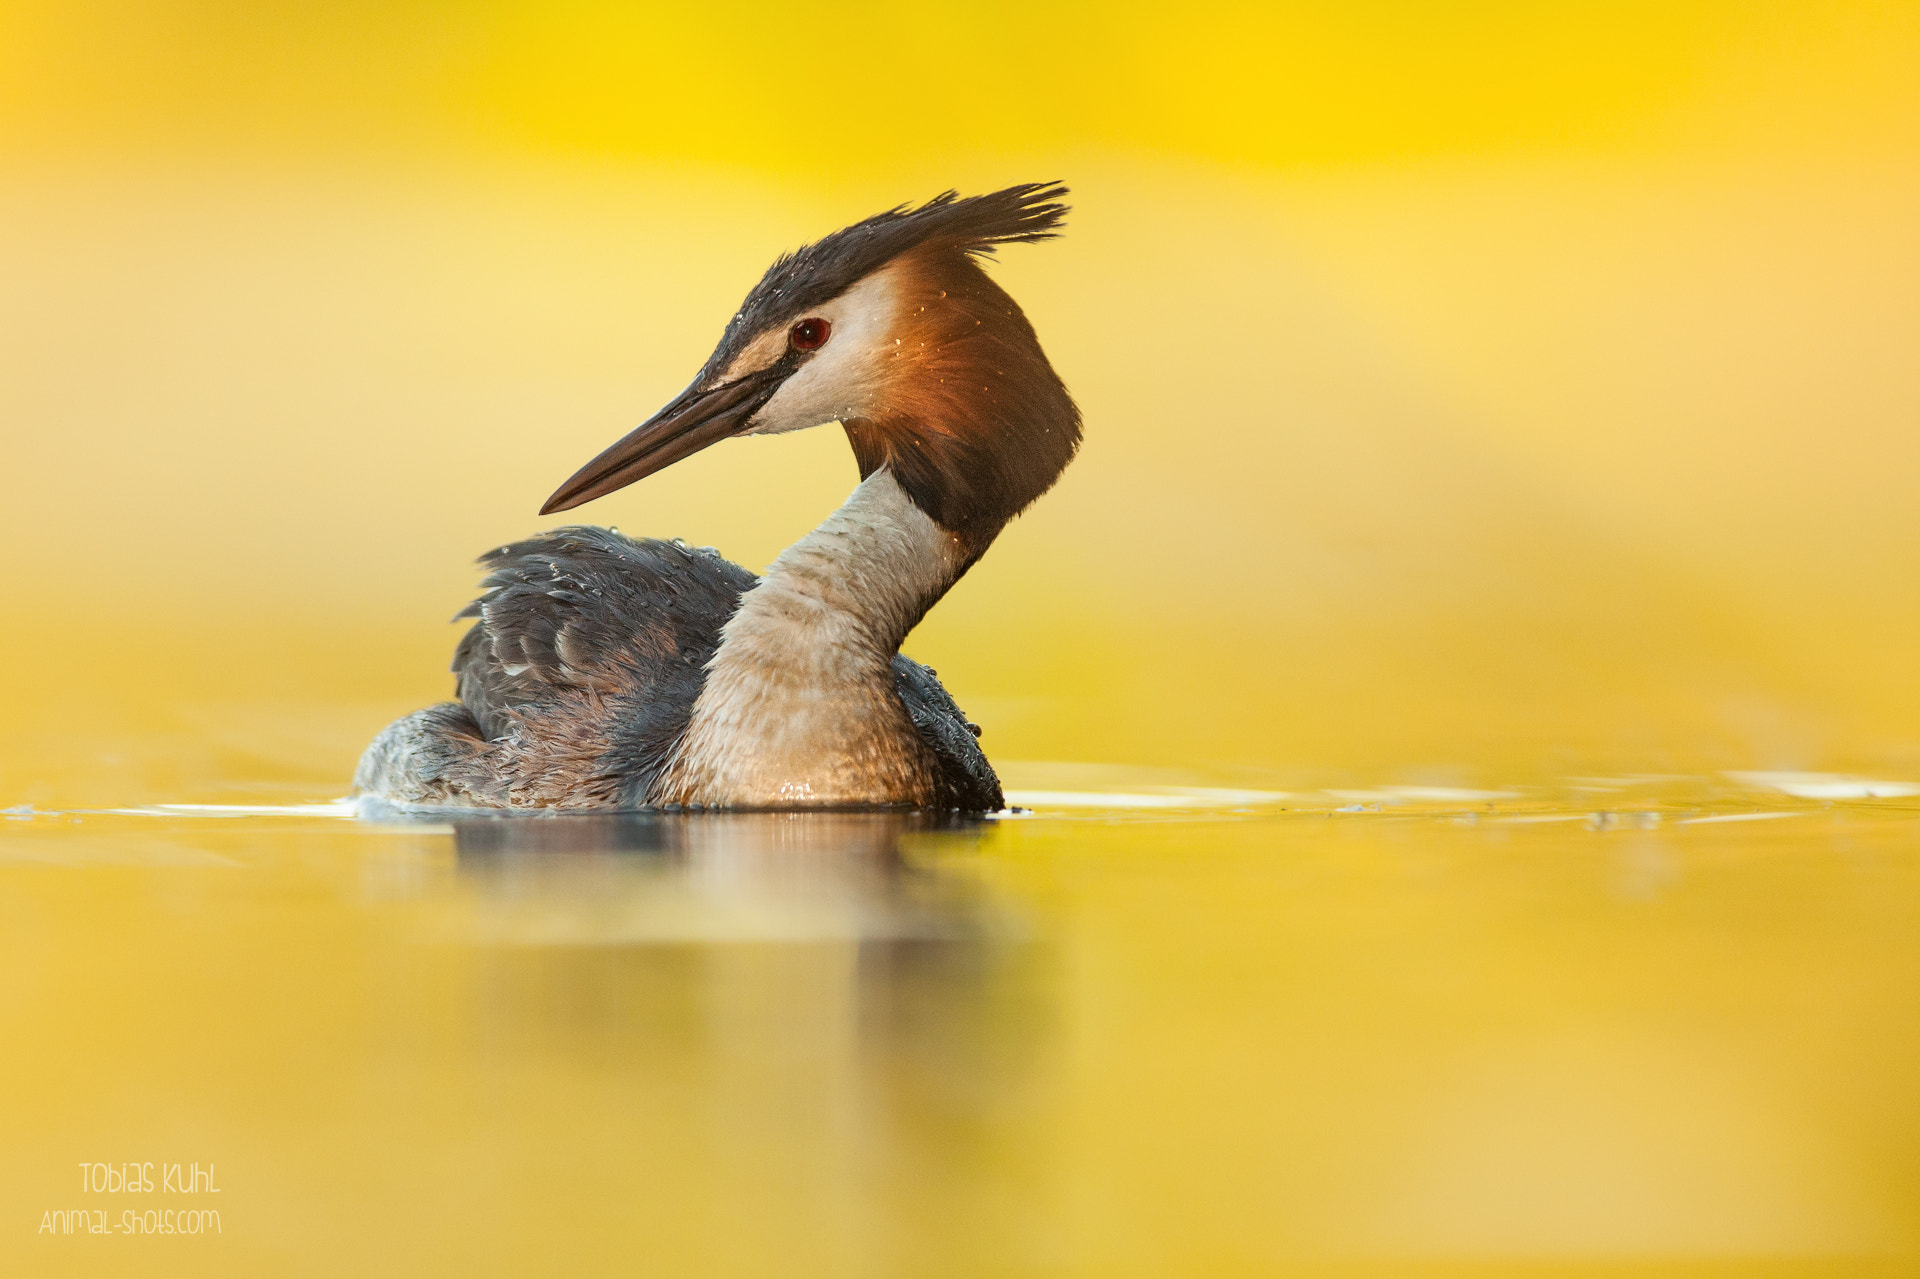 Photograph Eye to eye with a grebe by Tobias Kuhl on 500px